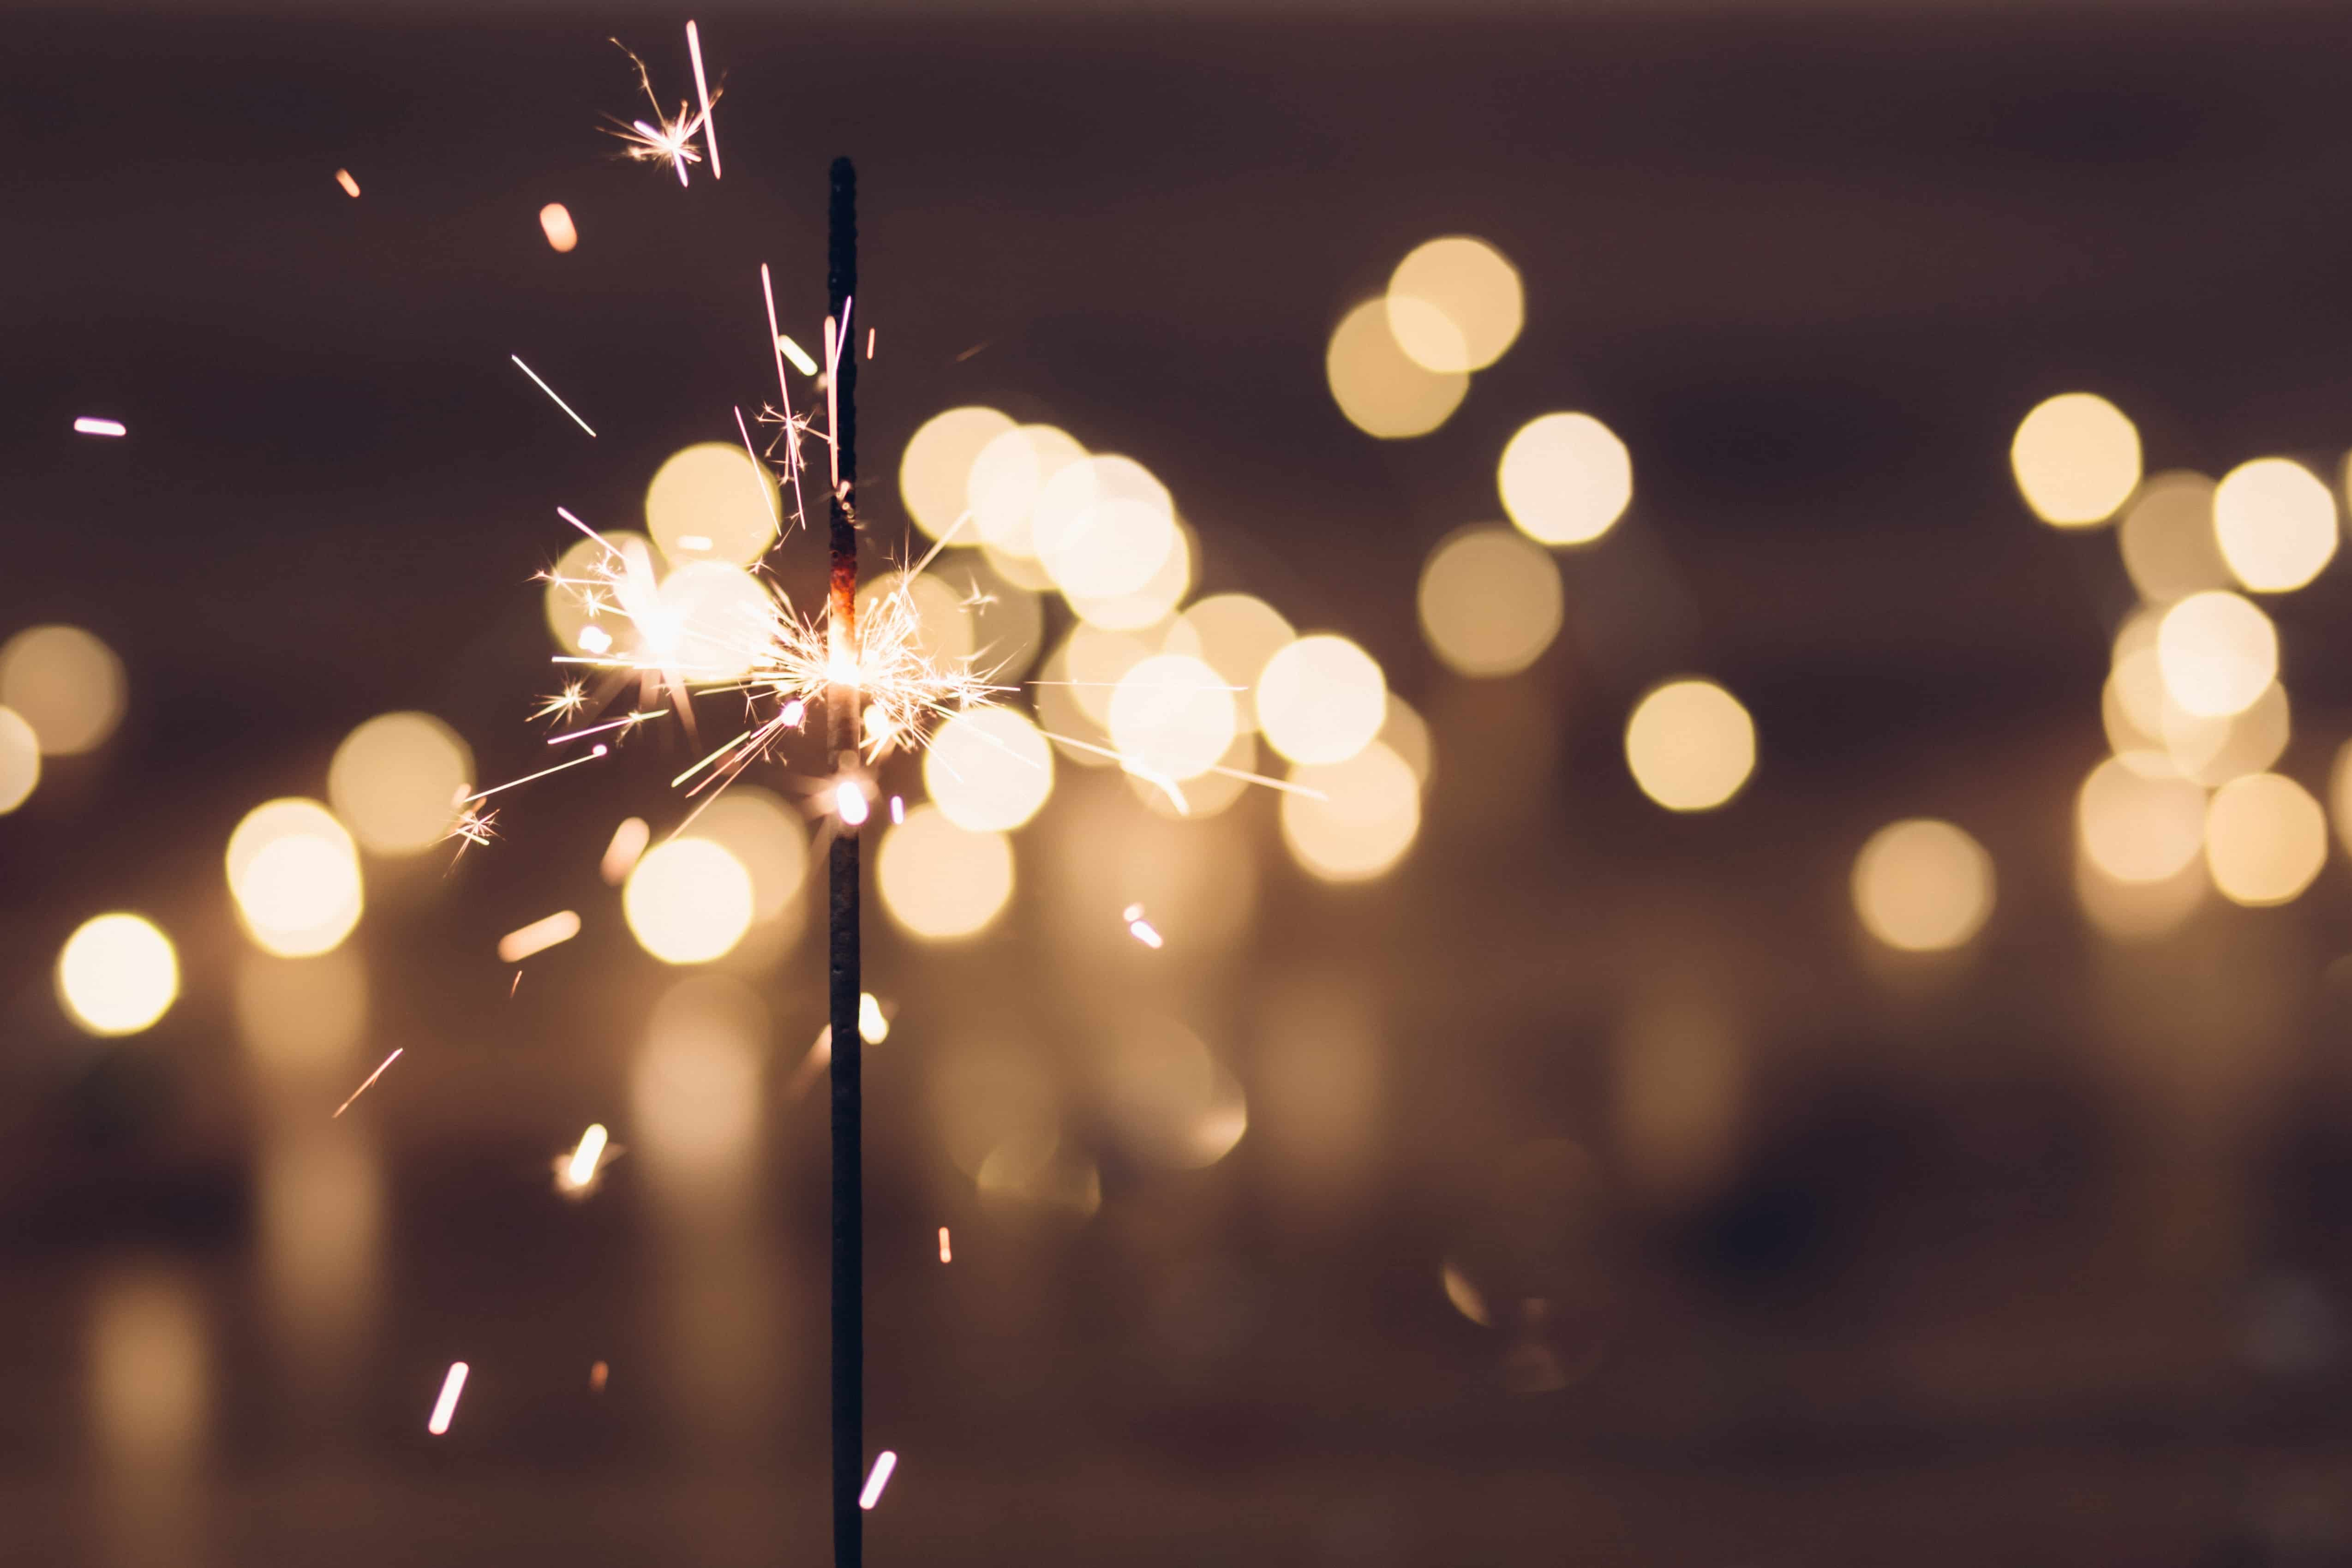 Fireworks and sparkler for new year